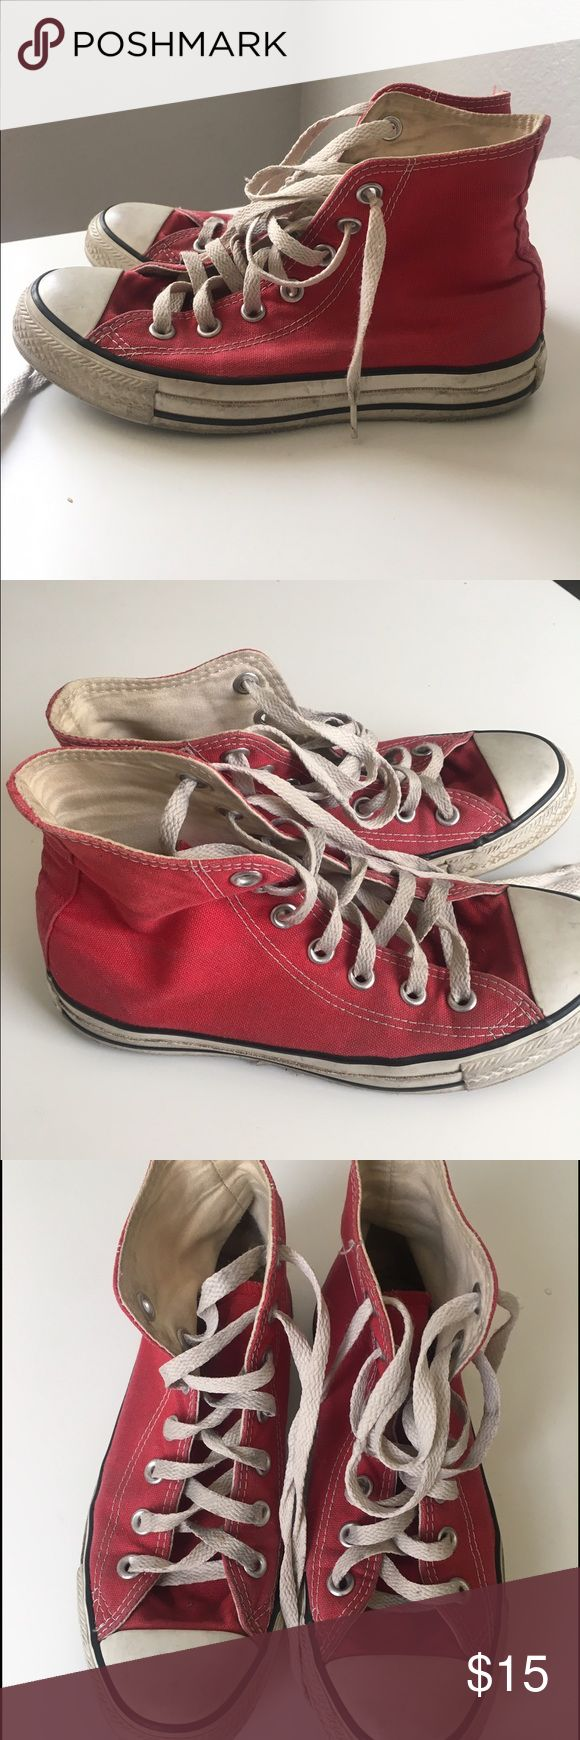 Red Converse These have been worn but have plenty of life left in them! :) Converse Shoes Sneakers